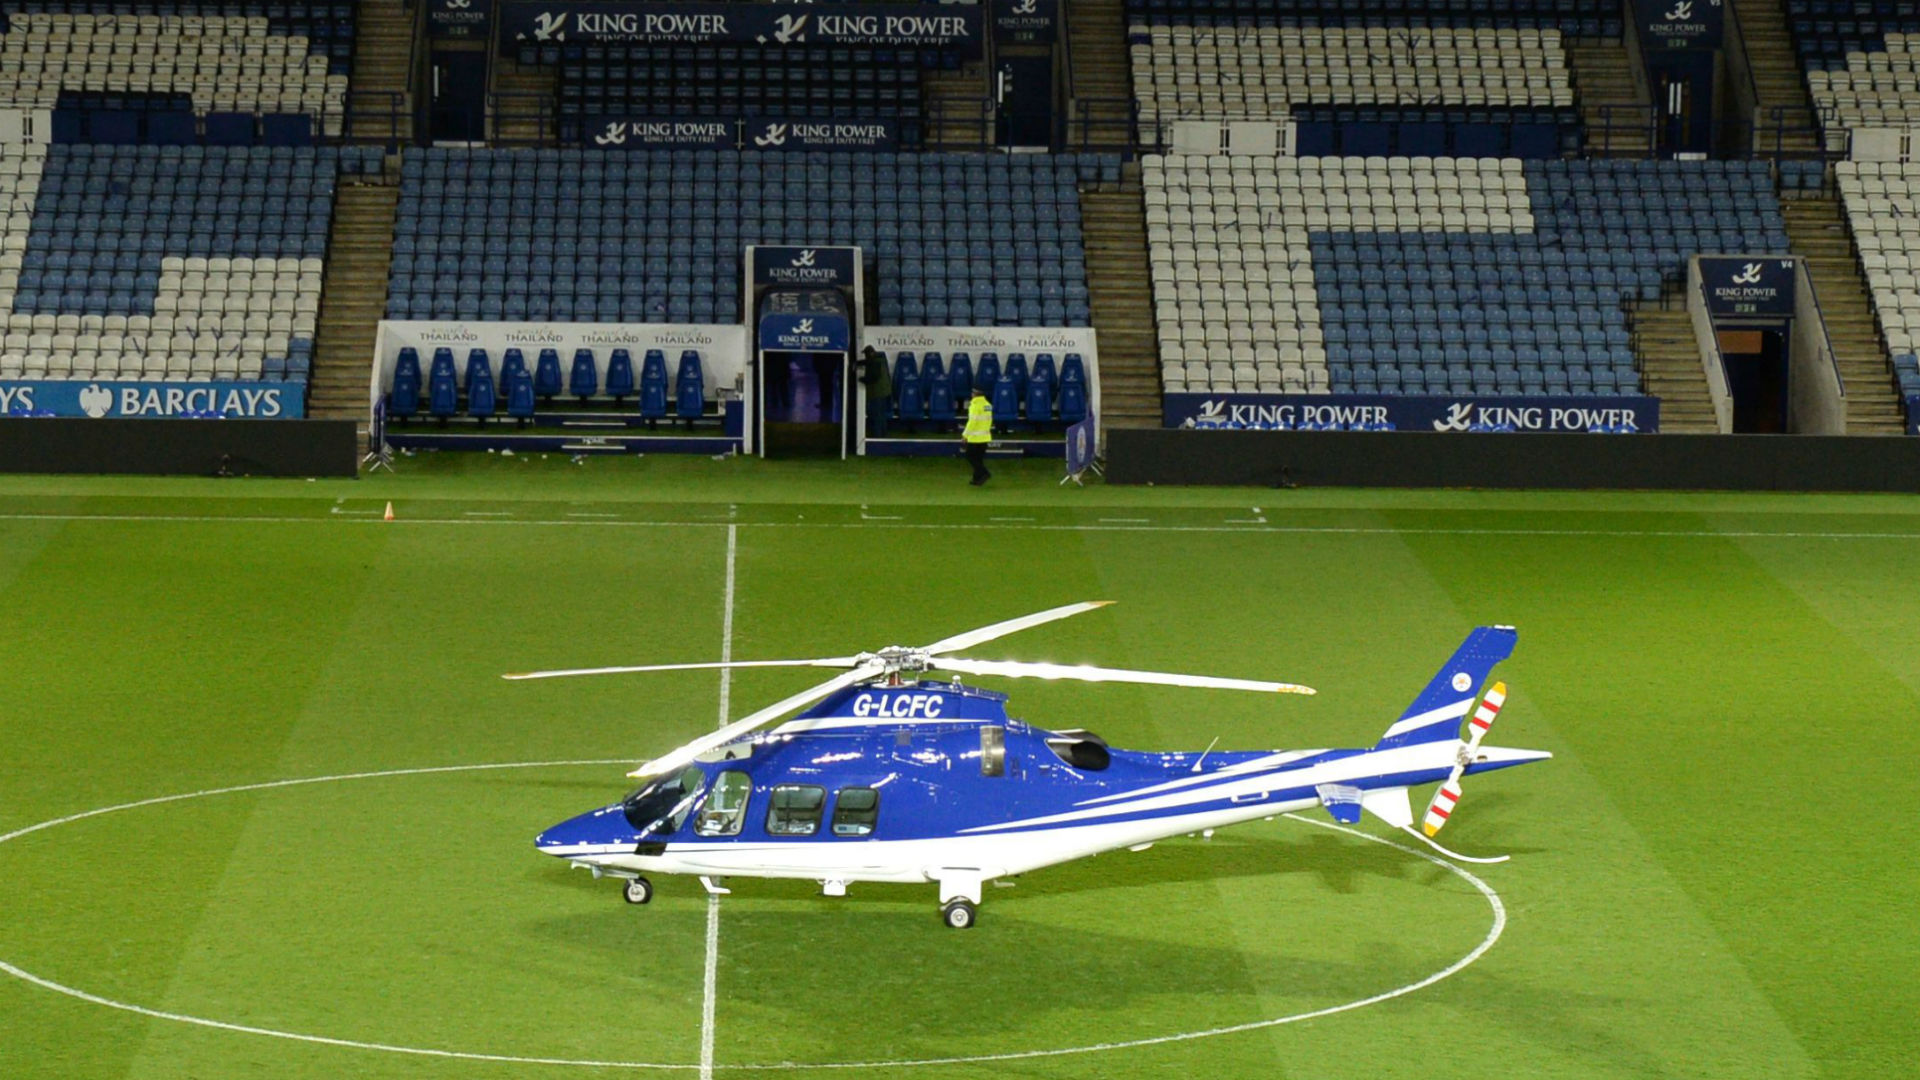 A helicopter reportedly owned by Vichai Srivaddhanaprabha 2015